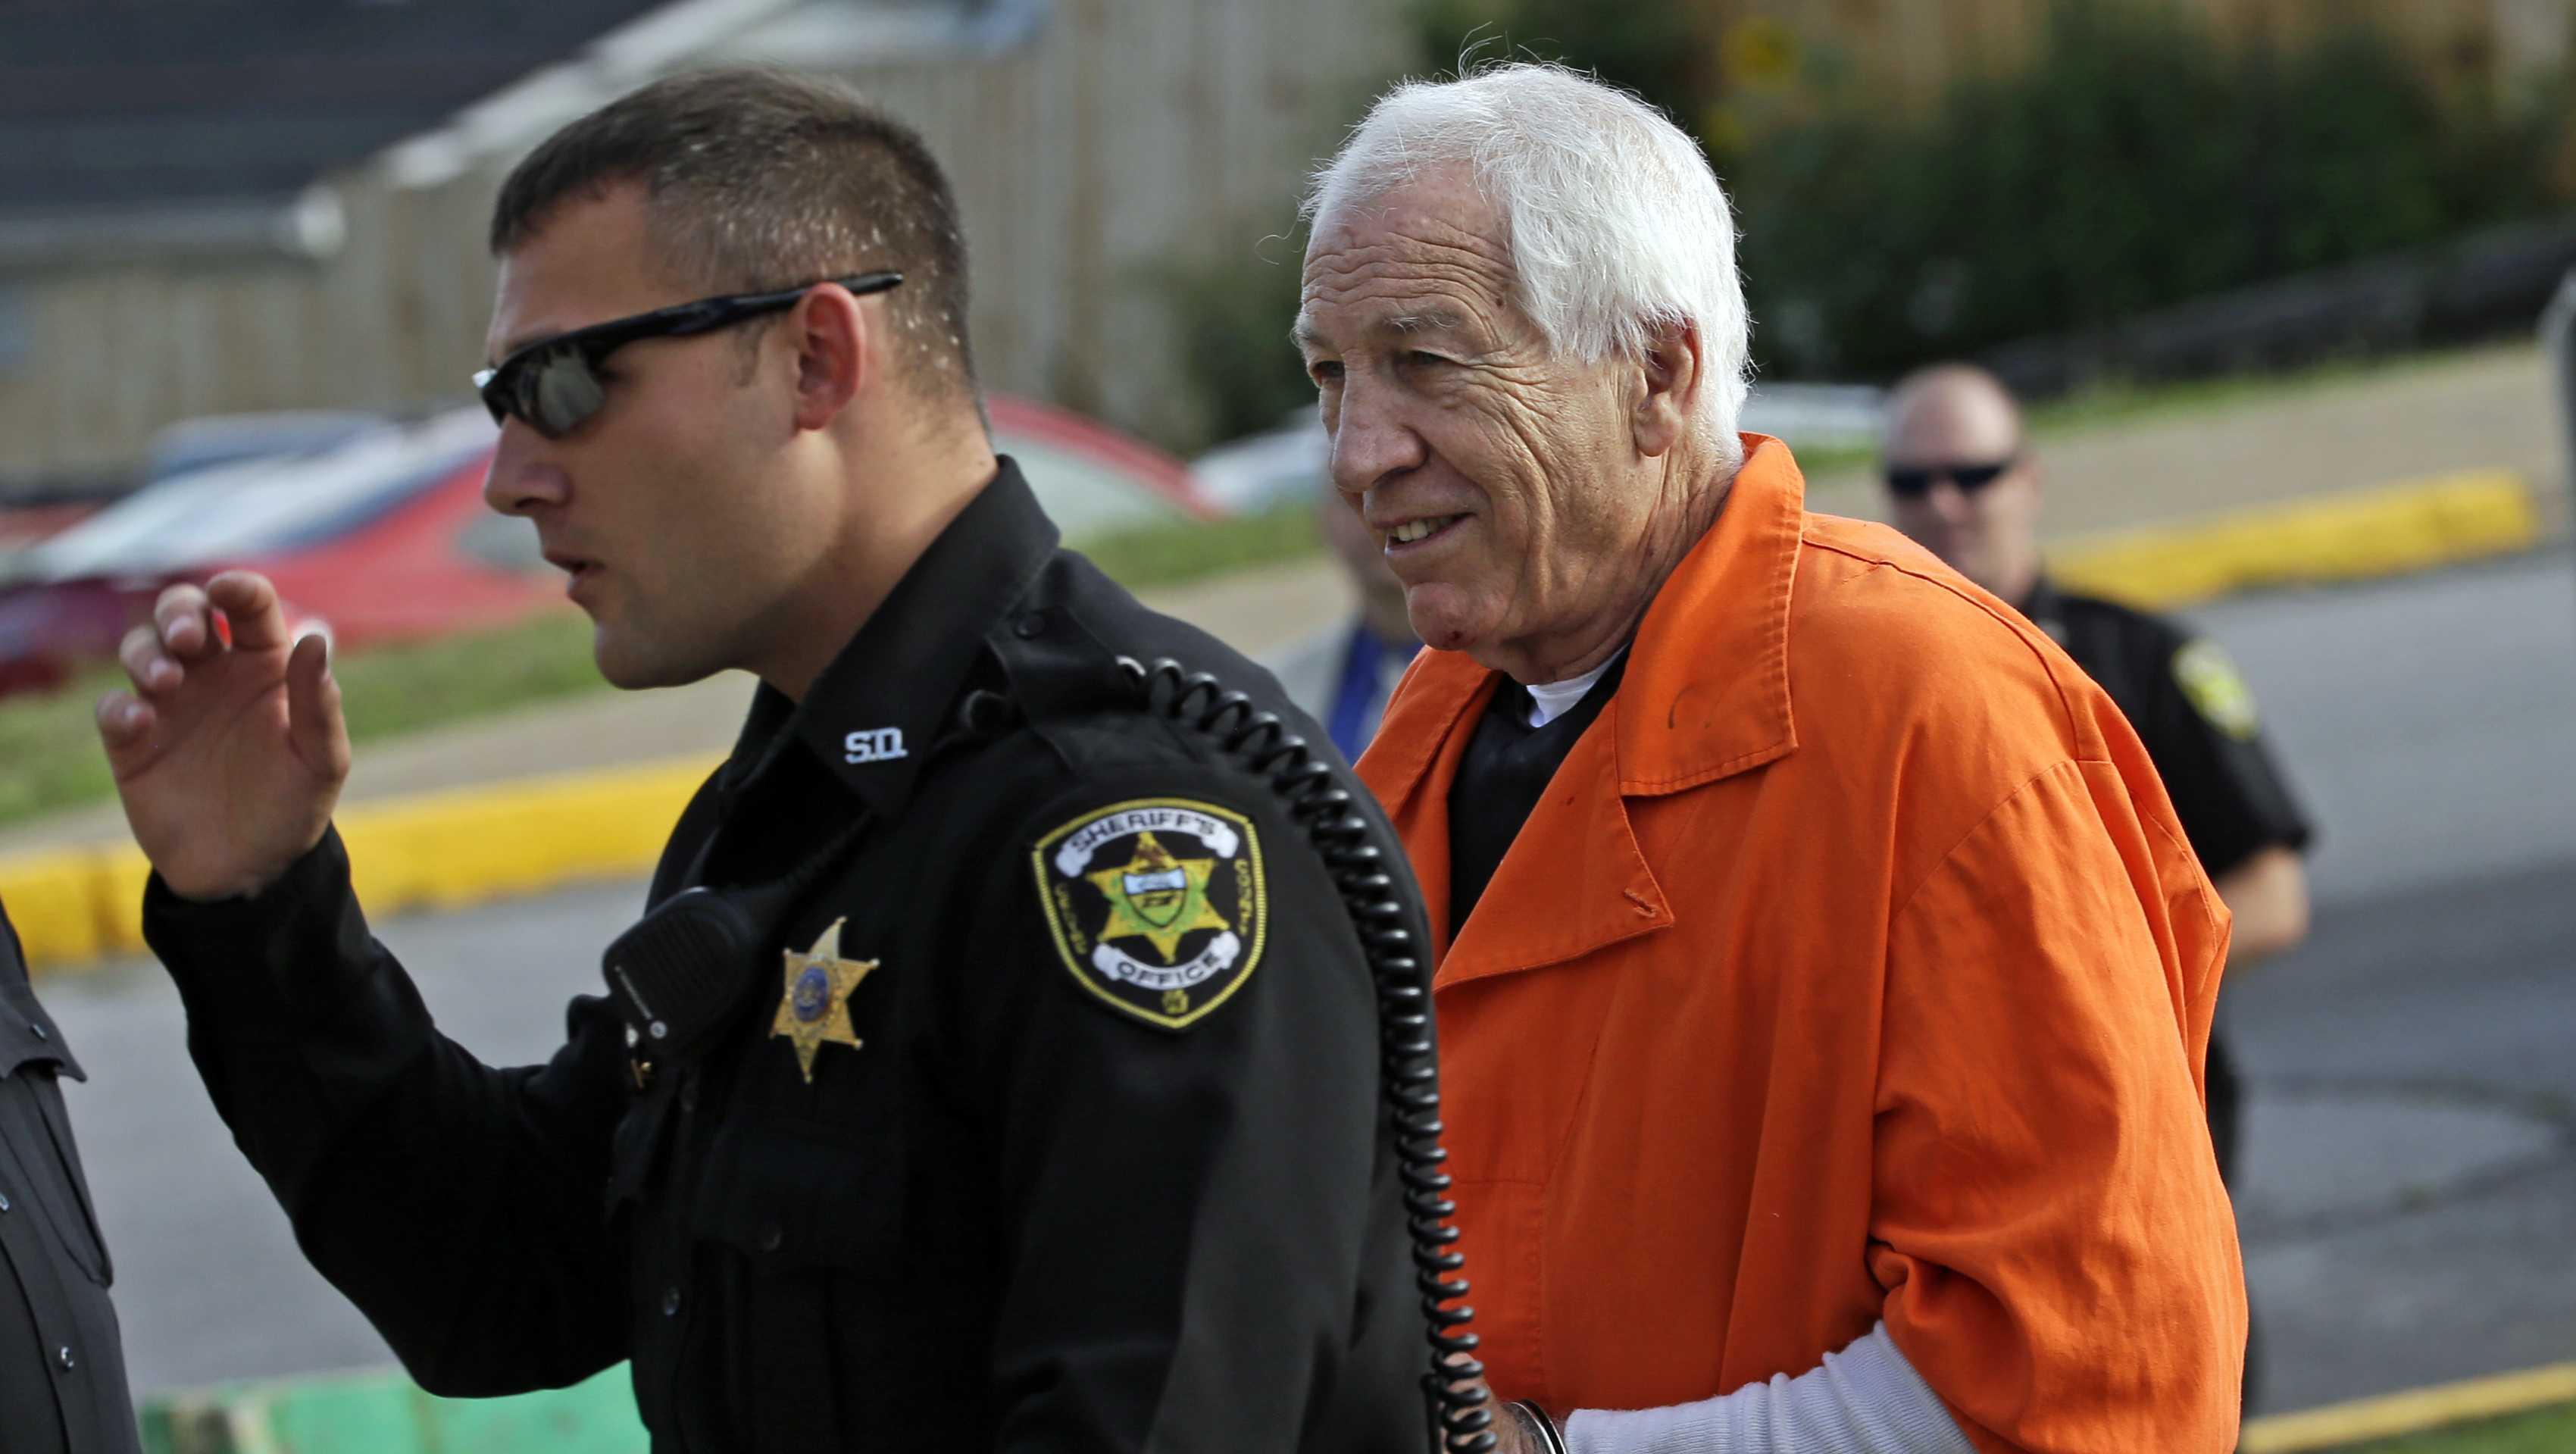 Former Penn State University assistant football coach Jerry Sandusky, right, arrives at the Centre County Courthouse.